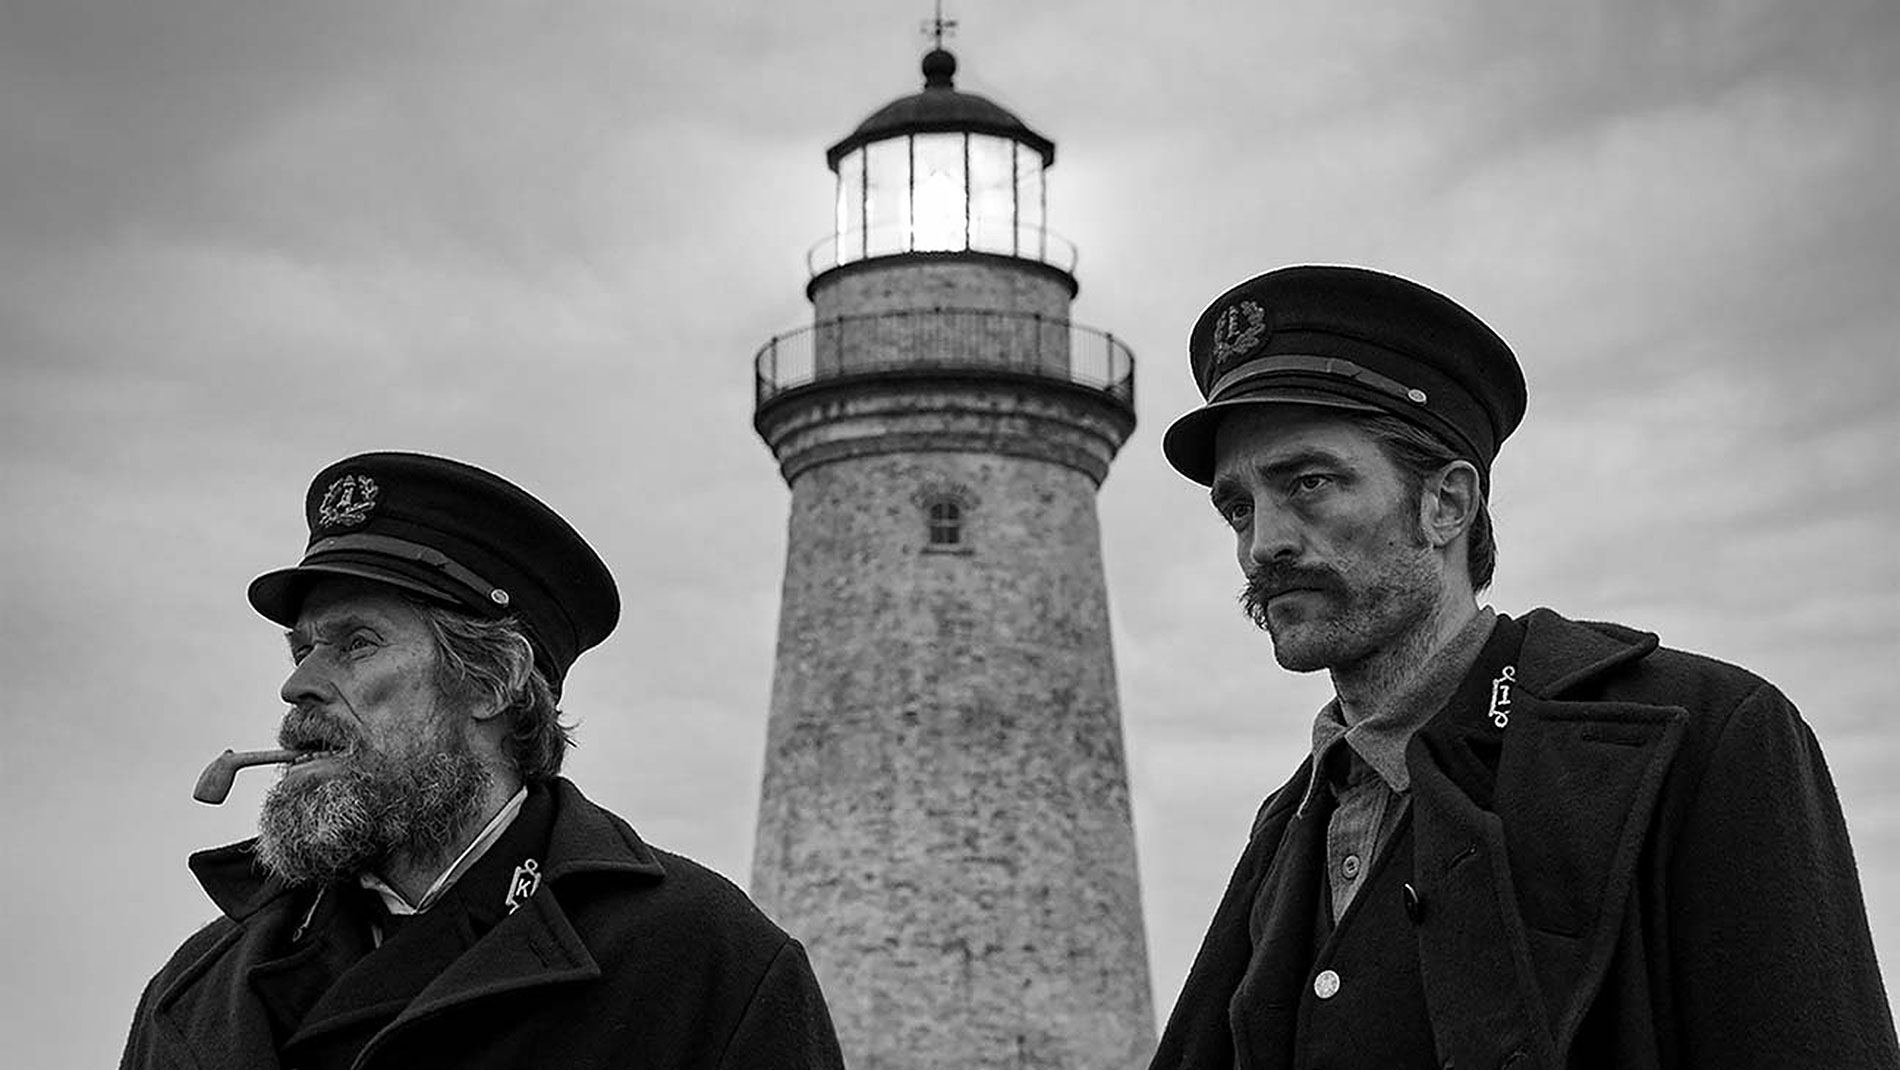 Cannes 2019: The Lighthouse Review